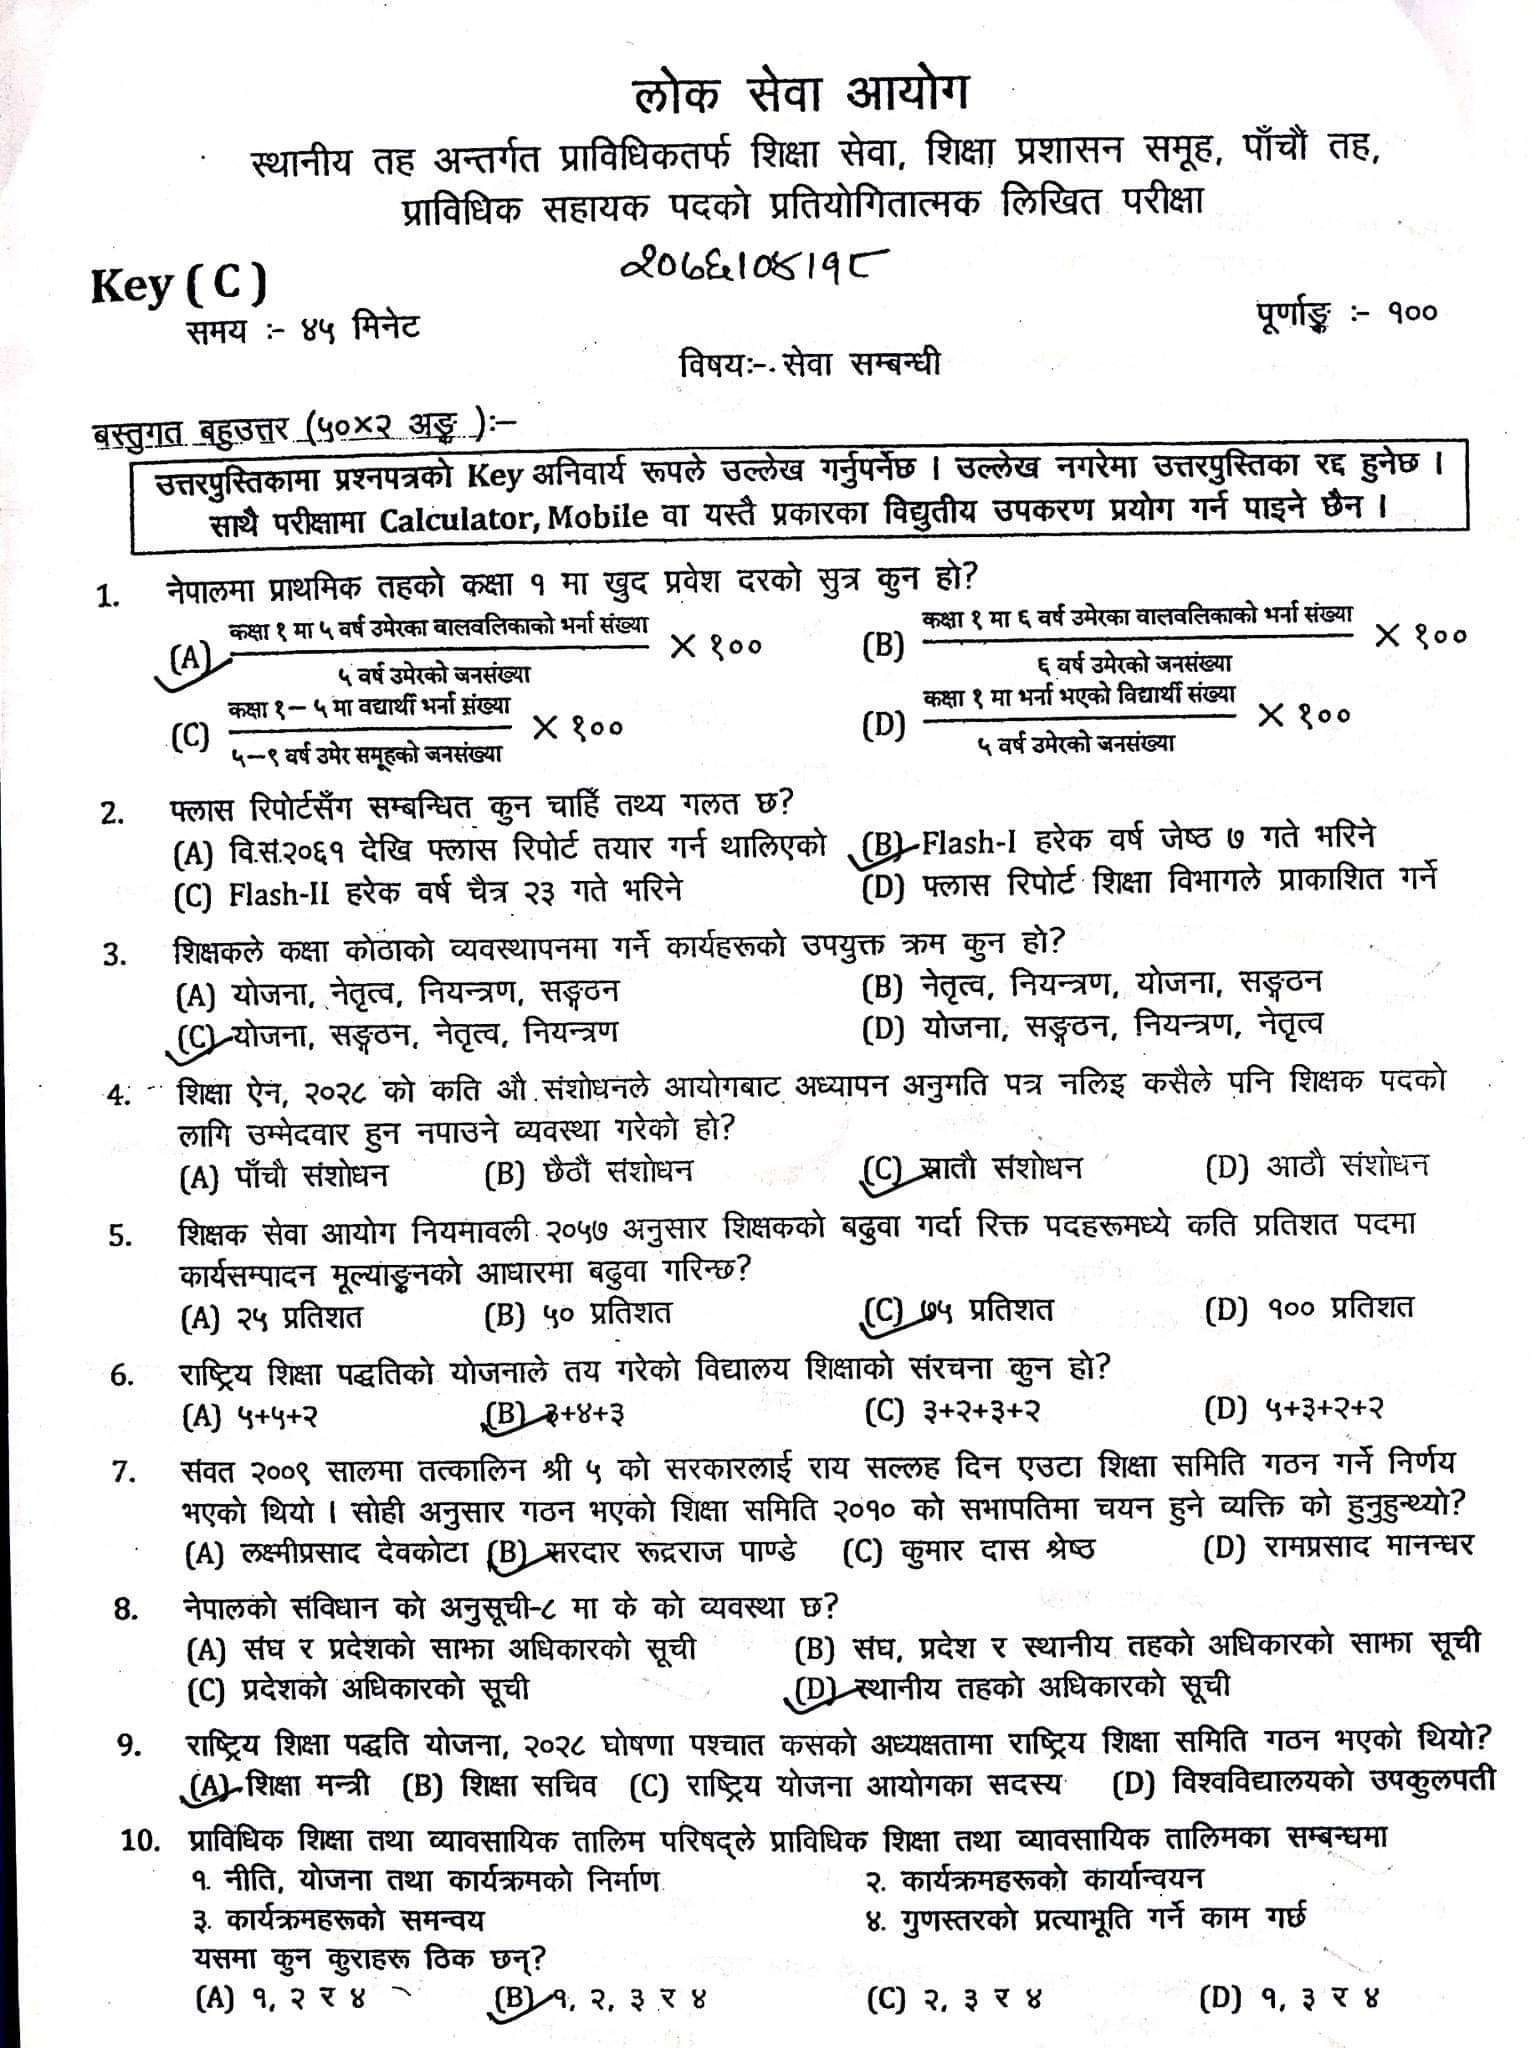 Click And view Lok Sewa Aayog Prasa Exam Question 2076.Prasa Exam Question 2076, Prasa Exam Question 2076 dowload, Prasa question 2076, Prasa question, Prasa question 2076, Prasa exam question 2076, Prasa exam question 2076, Prasa exam question, Prasa exam question 2076, lok sewa aayog Prasa question 2076,lok sewa aayog Prasa question, lok sewa aayog Prasa question 2076, lok sewa aayog Prasa exam question 2076,lok sewa aayog Prasa exam question 2076, lok sewa aayog Prasa exam question, lok sewa aayog Prasa exam question 2076, lok sewa aayog Prasa question 2076, lok sewa aayog Prasa question, lok sewa aayog Prasa question 2076, lok sewa aayog Prasa exam question 2076,lok sewa aayog Prasa exam question 2076,lok sewa aayog Prasa exam question, lok sewa aayog Prasa exam question 2076,psc Prasa question 2076,psc Prasa question, psc Prasa question 2076,psc Prasa exam question 2076,psc Prasa exam question 2076,psc Prasa exam question, psc Prasa exam question 2076,खरिदार प्रश्न, खरिदार प्रश्न 2076, खरिदार प्रश्न २०७५,Click And view Lok Sewa Aayog Prasa Exam Question 2076